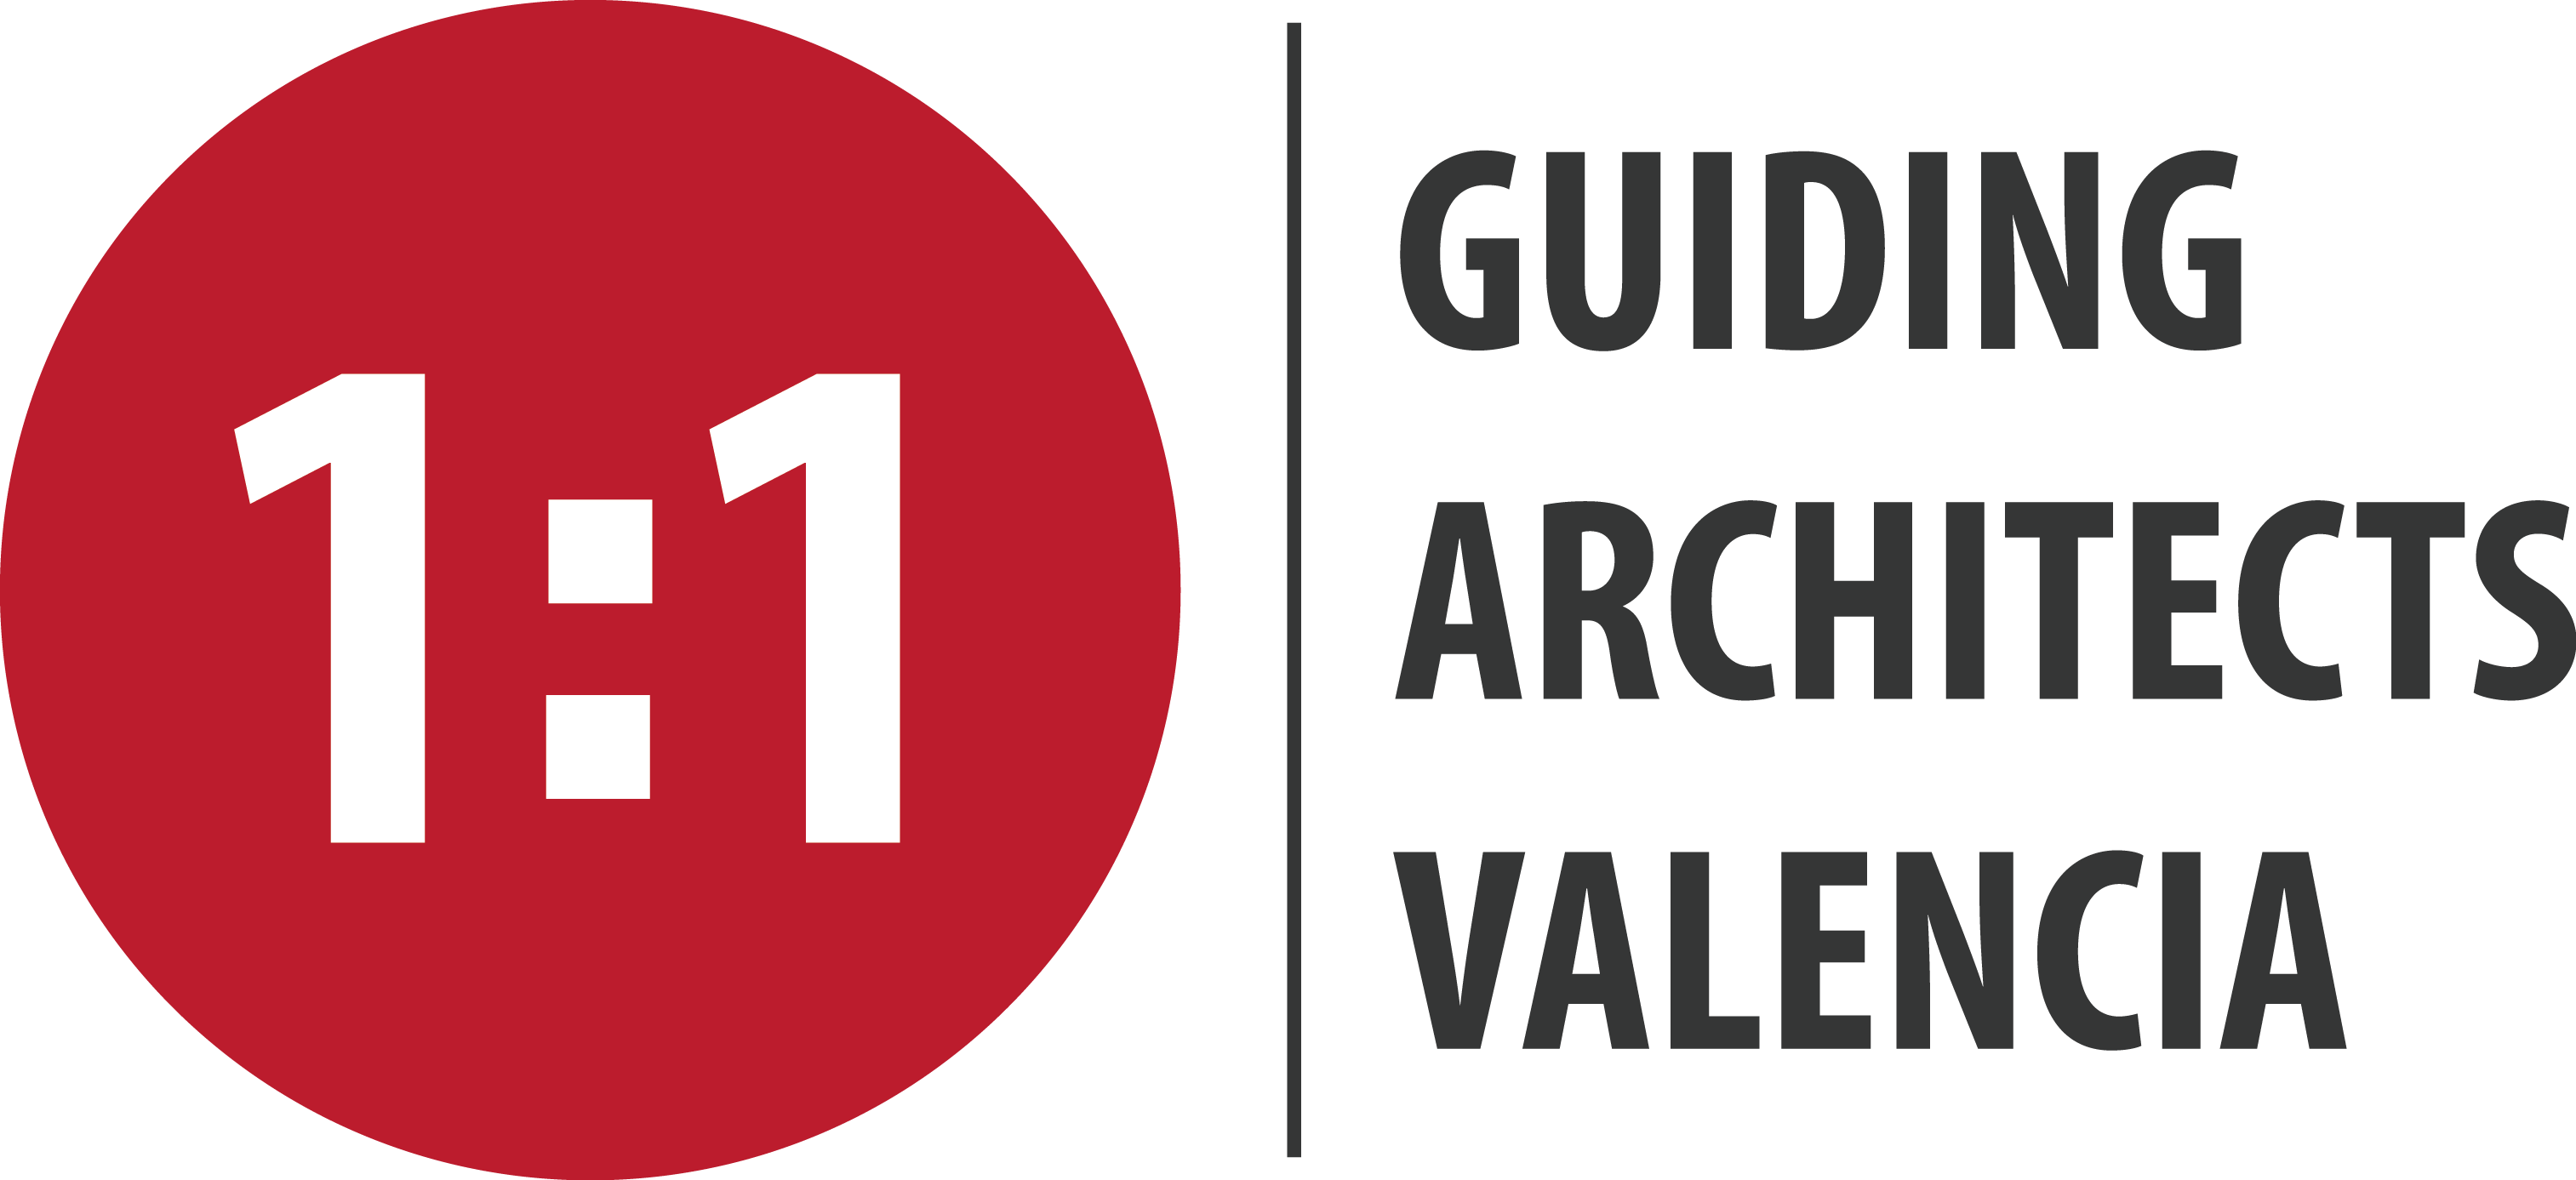 Guiding Architects Valencia